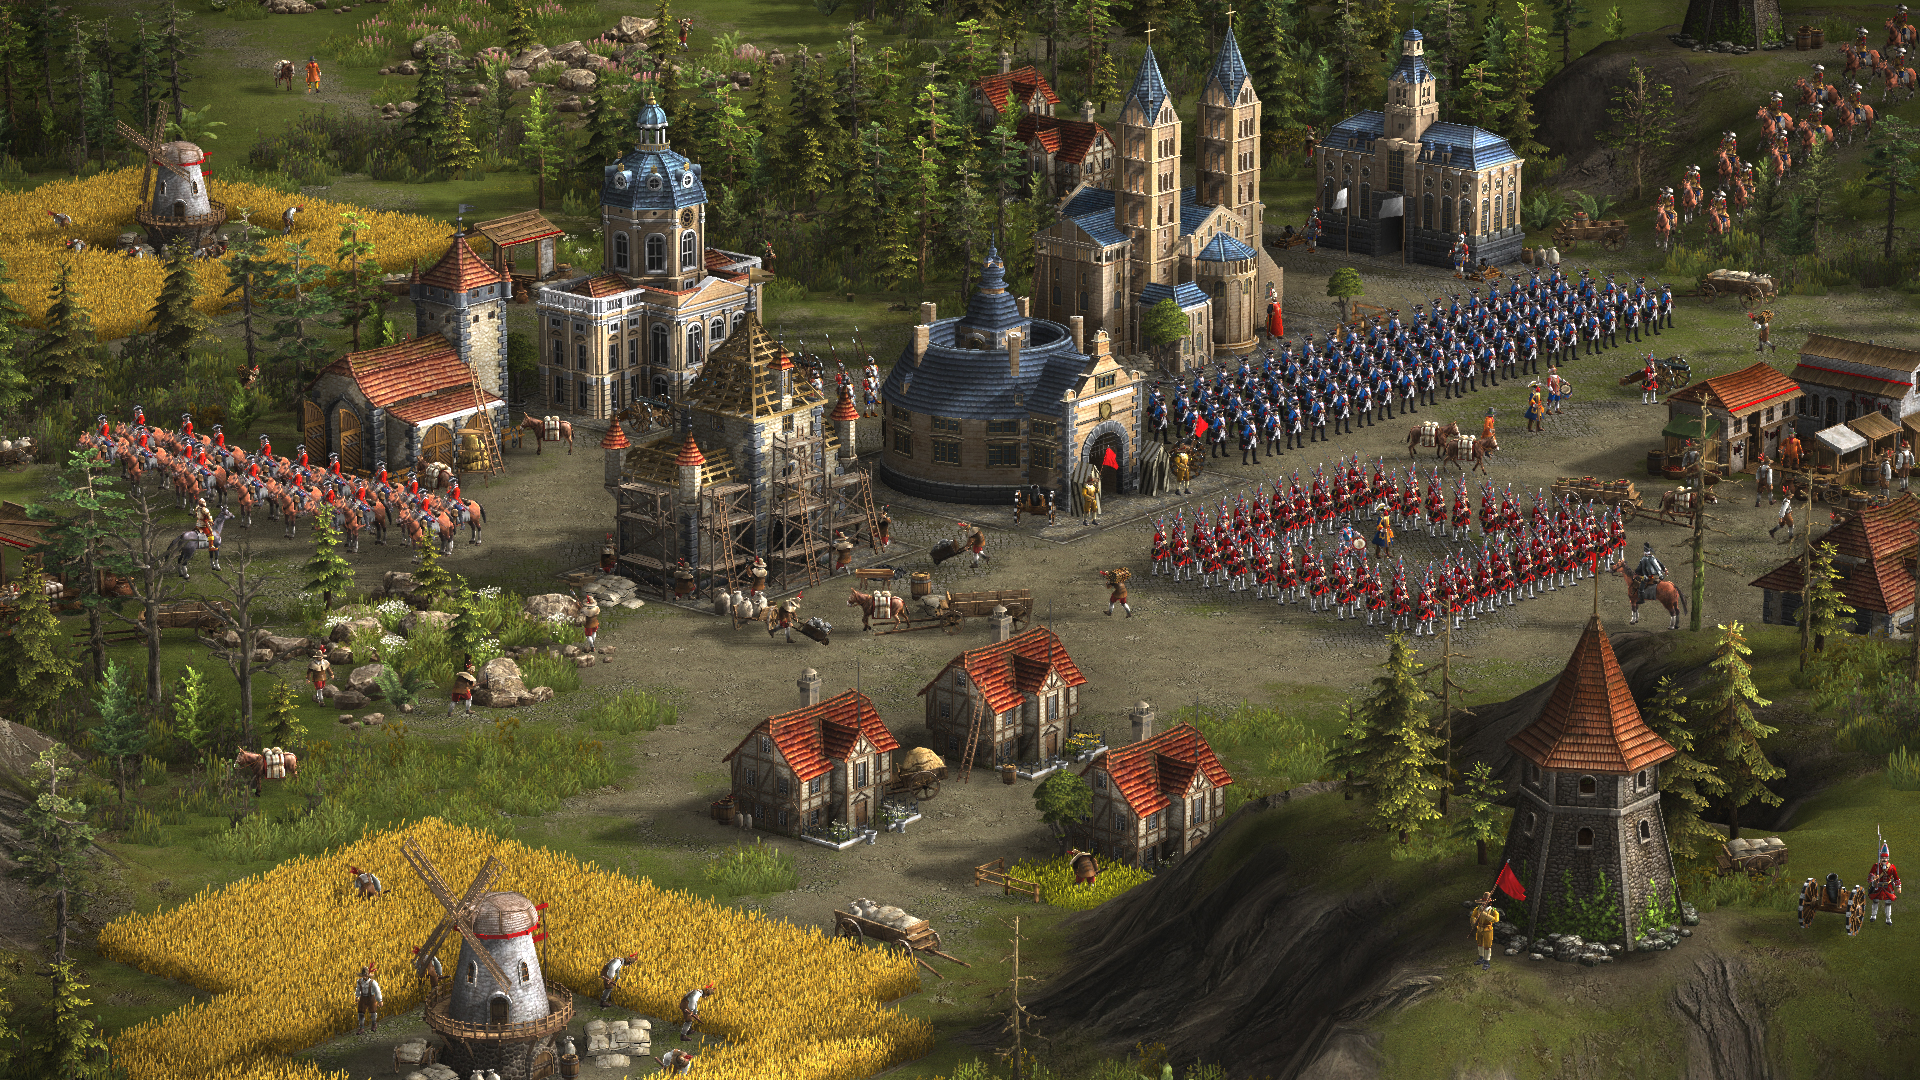 Скриншот к игре Казаки 3 / Cossacks 3 [v 2.1.4.90.5902 + 7 DLC] (2016) PC | RePack от R.G. Механики